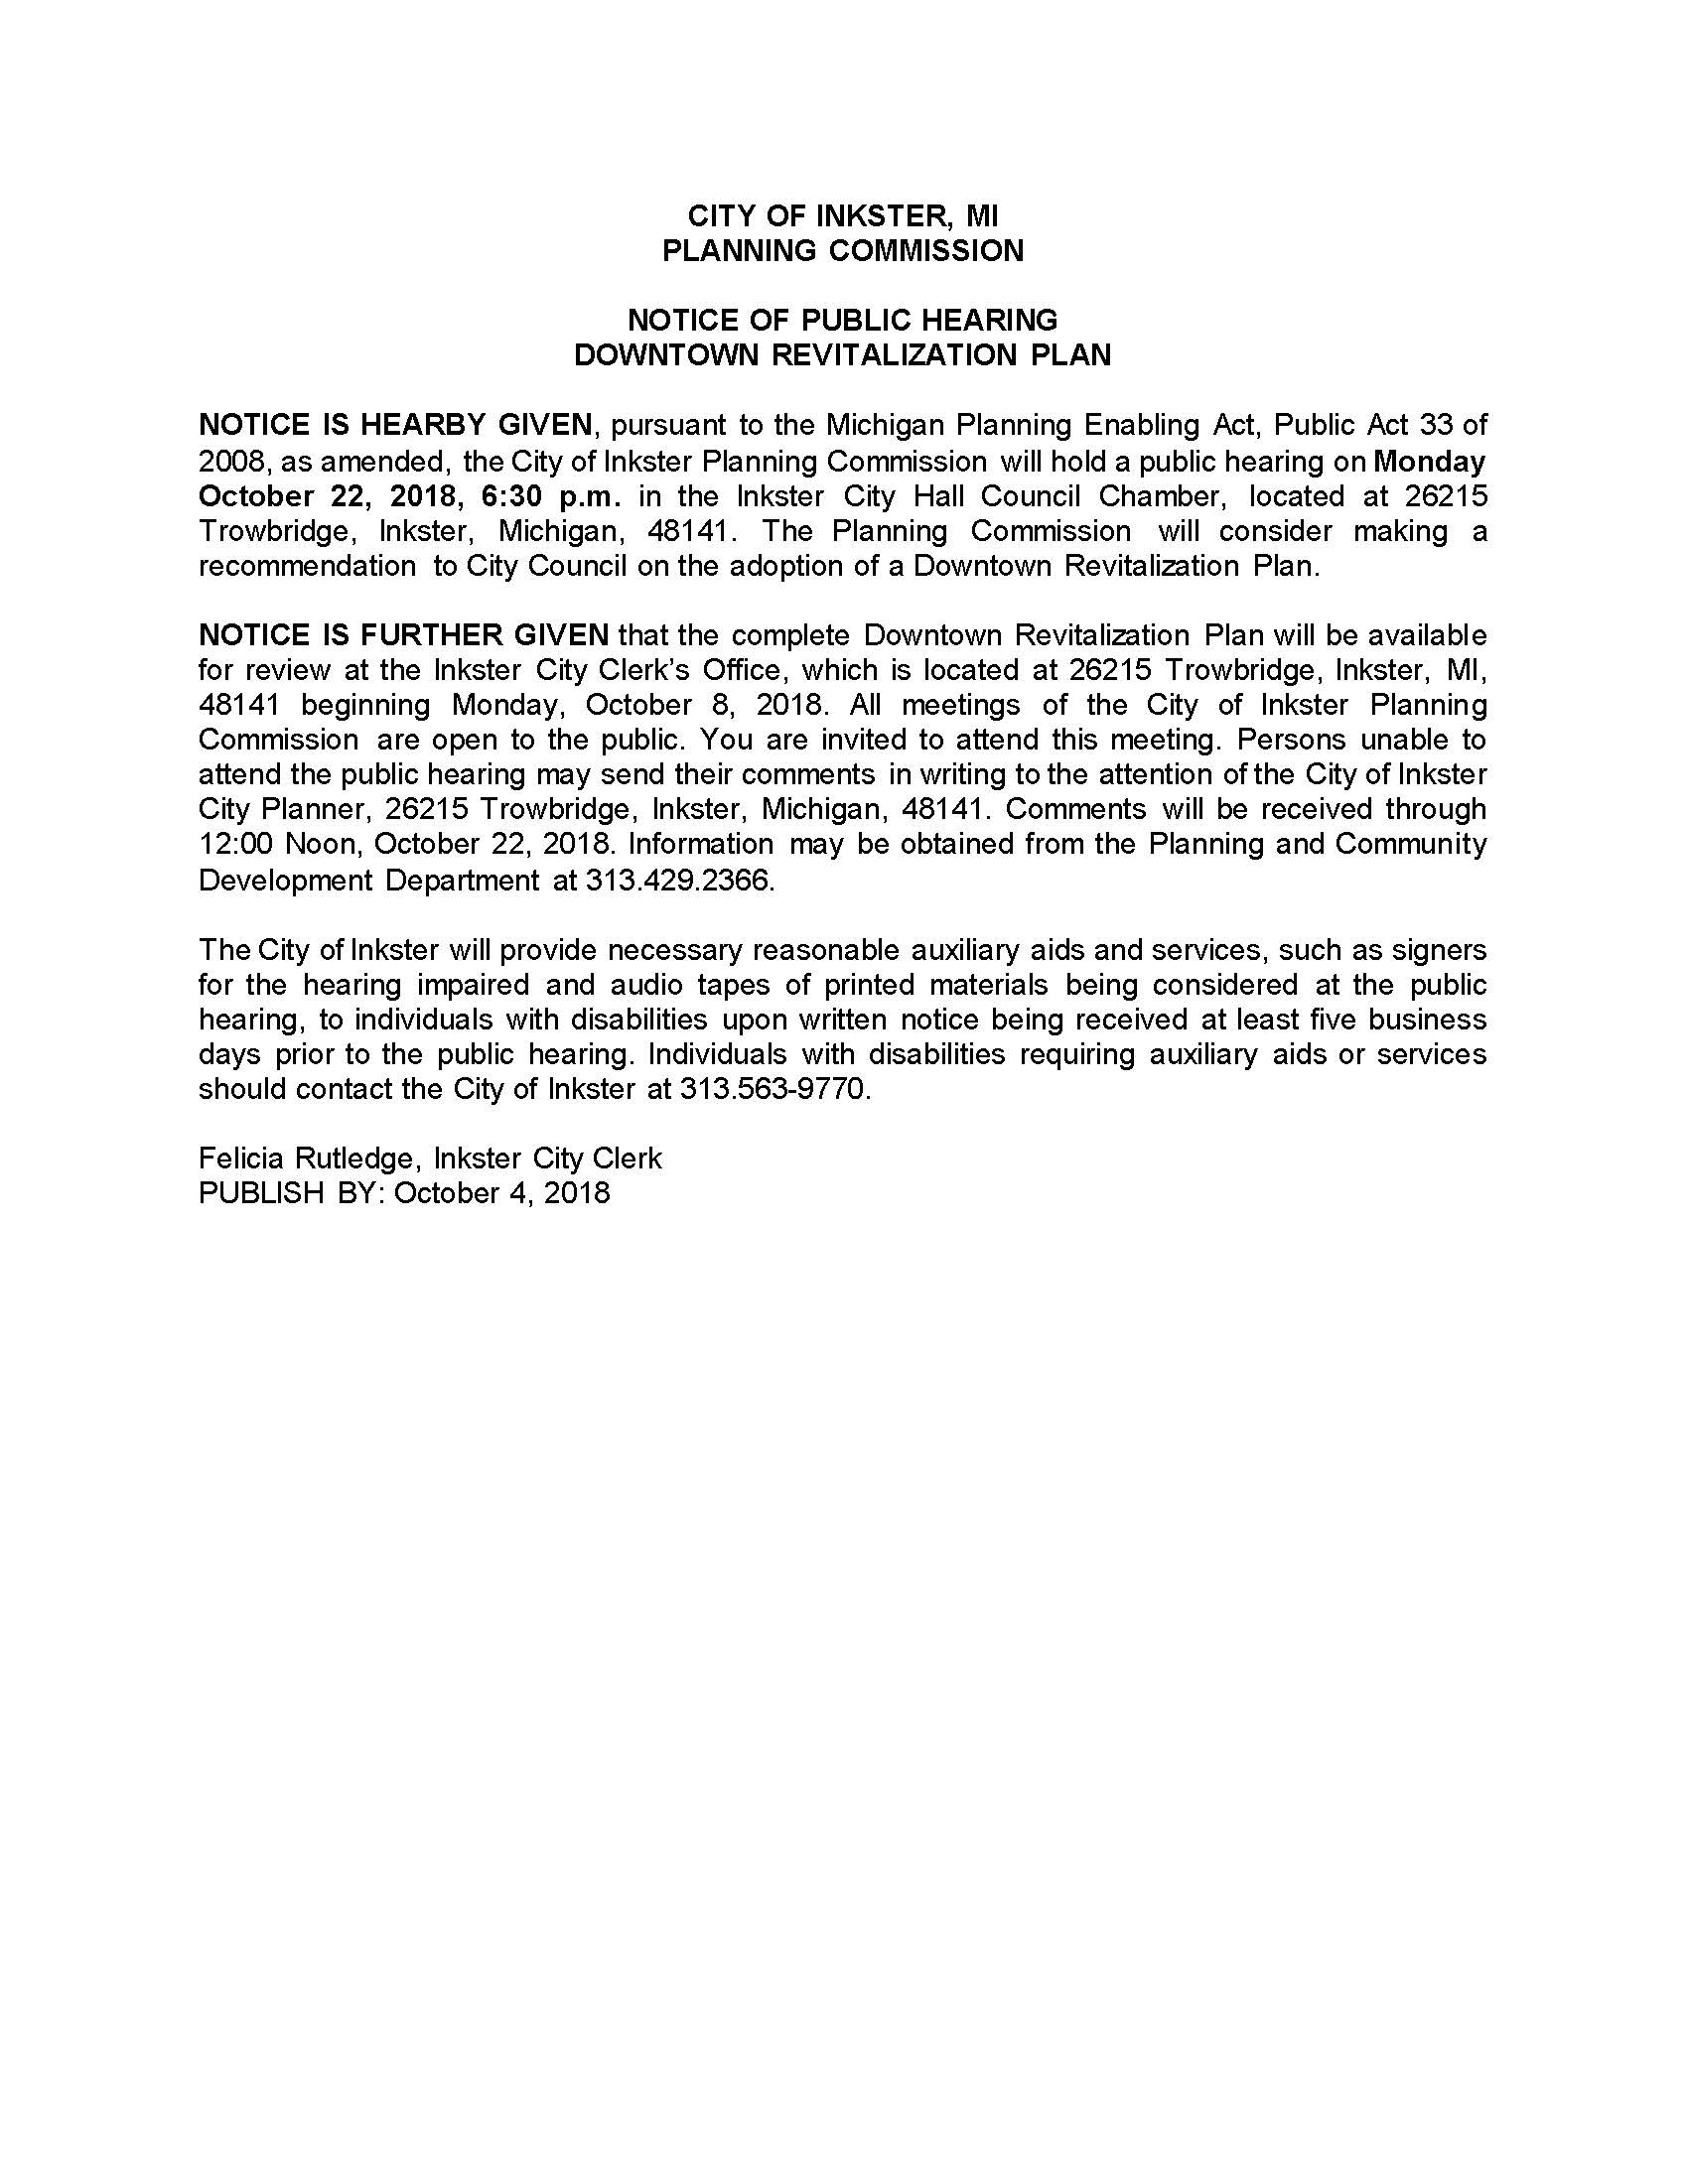 Public Hearing Notice Downtown Revitalization Plan